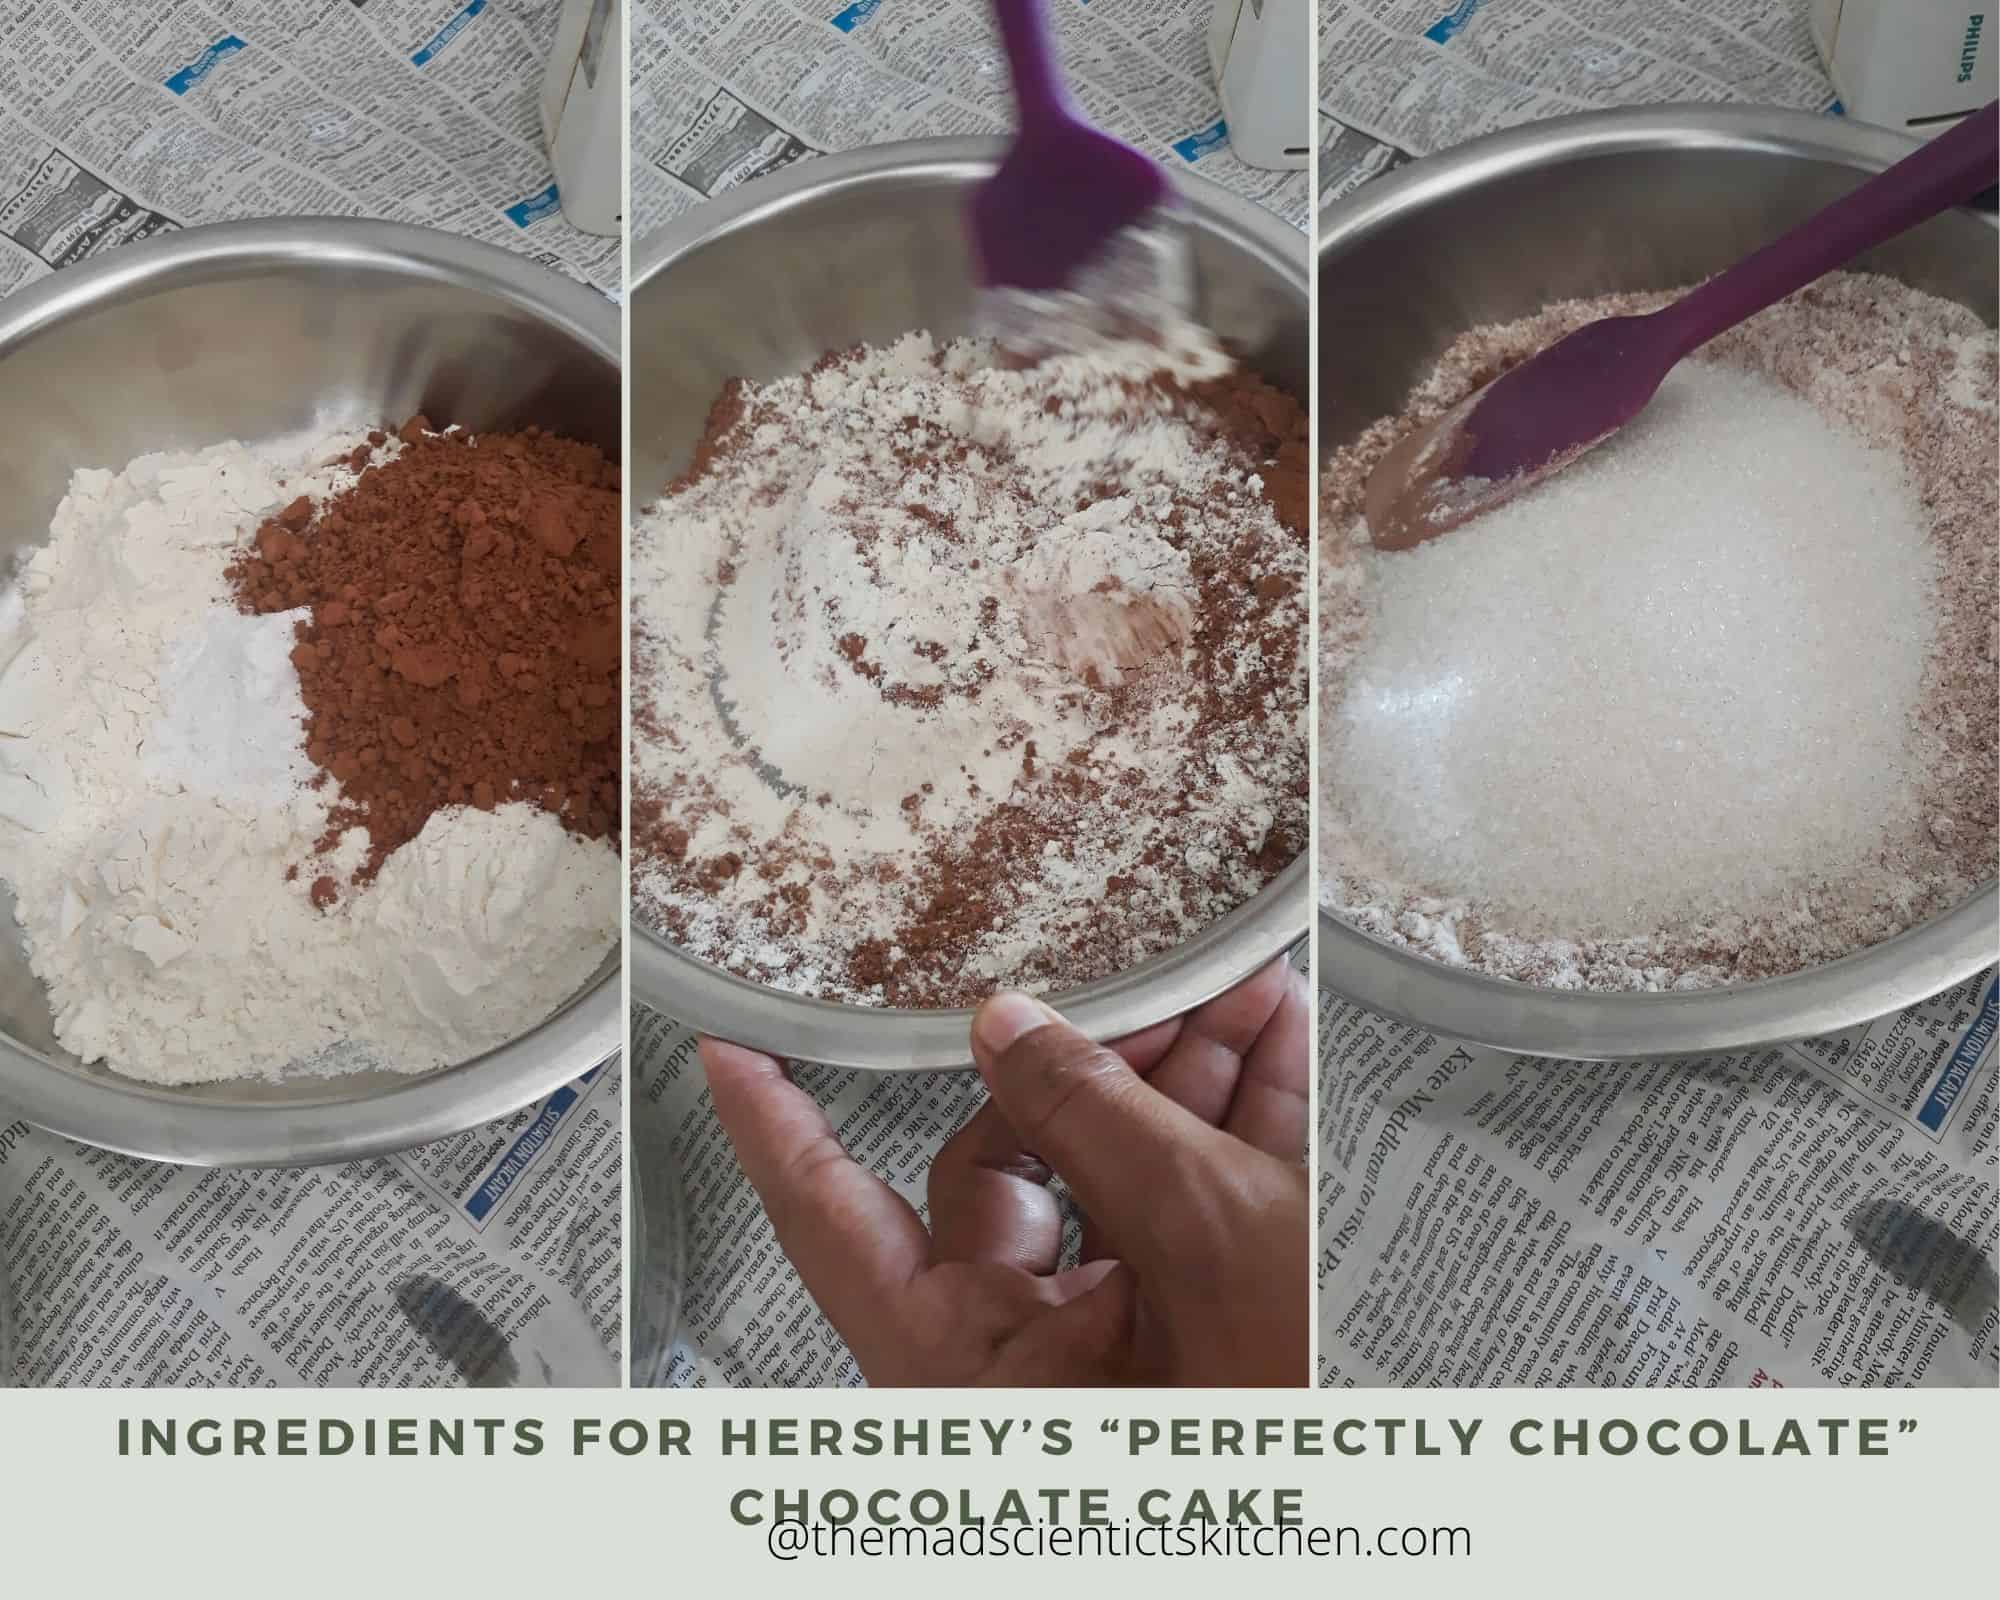 Dry ingredients for Chocolate cake